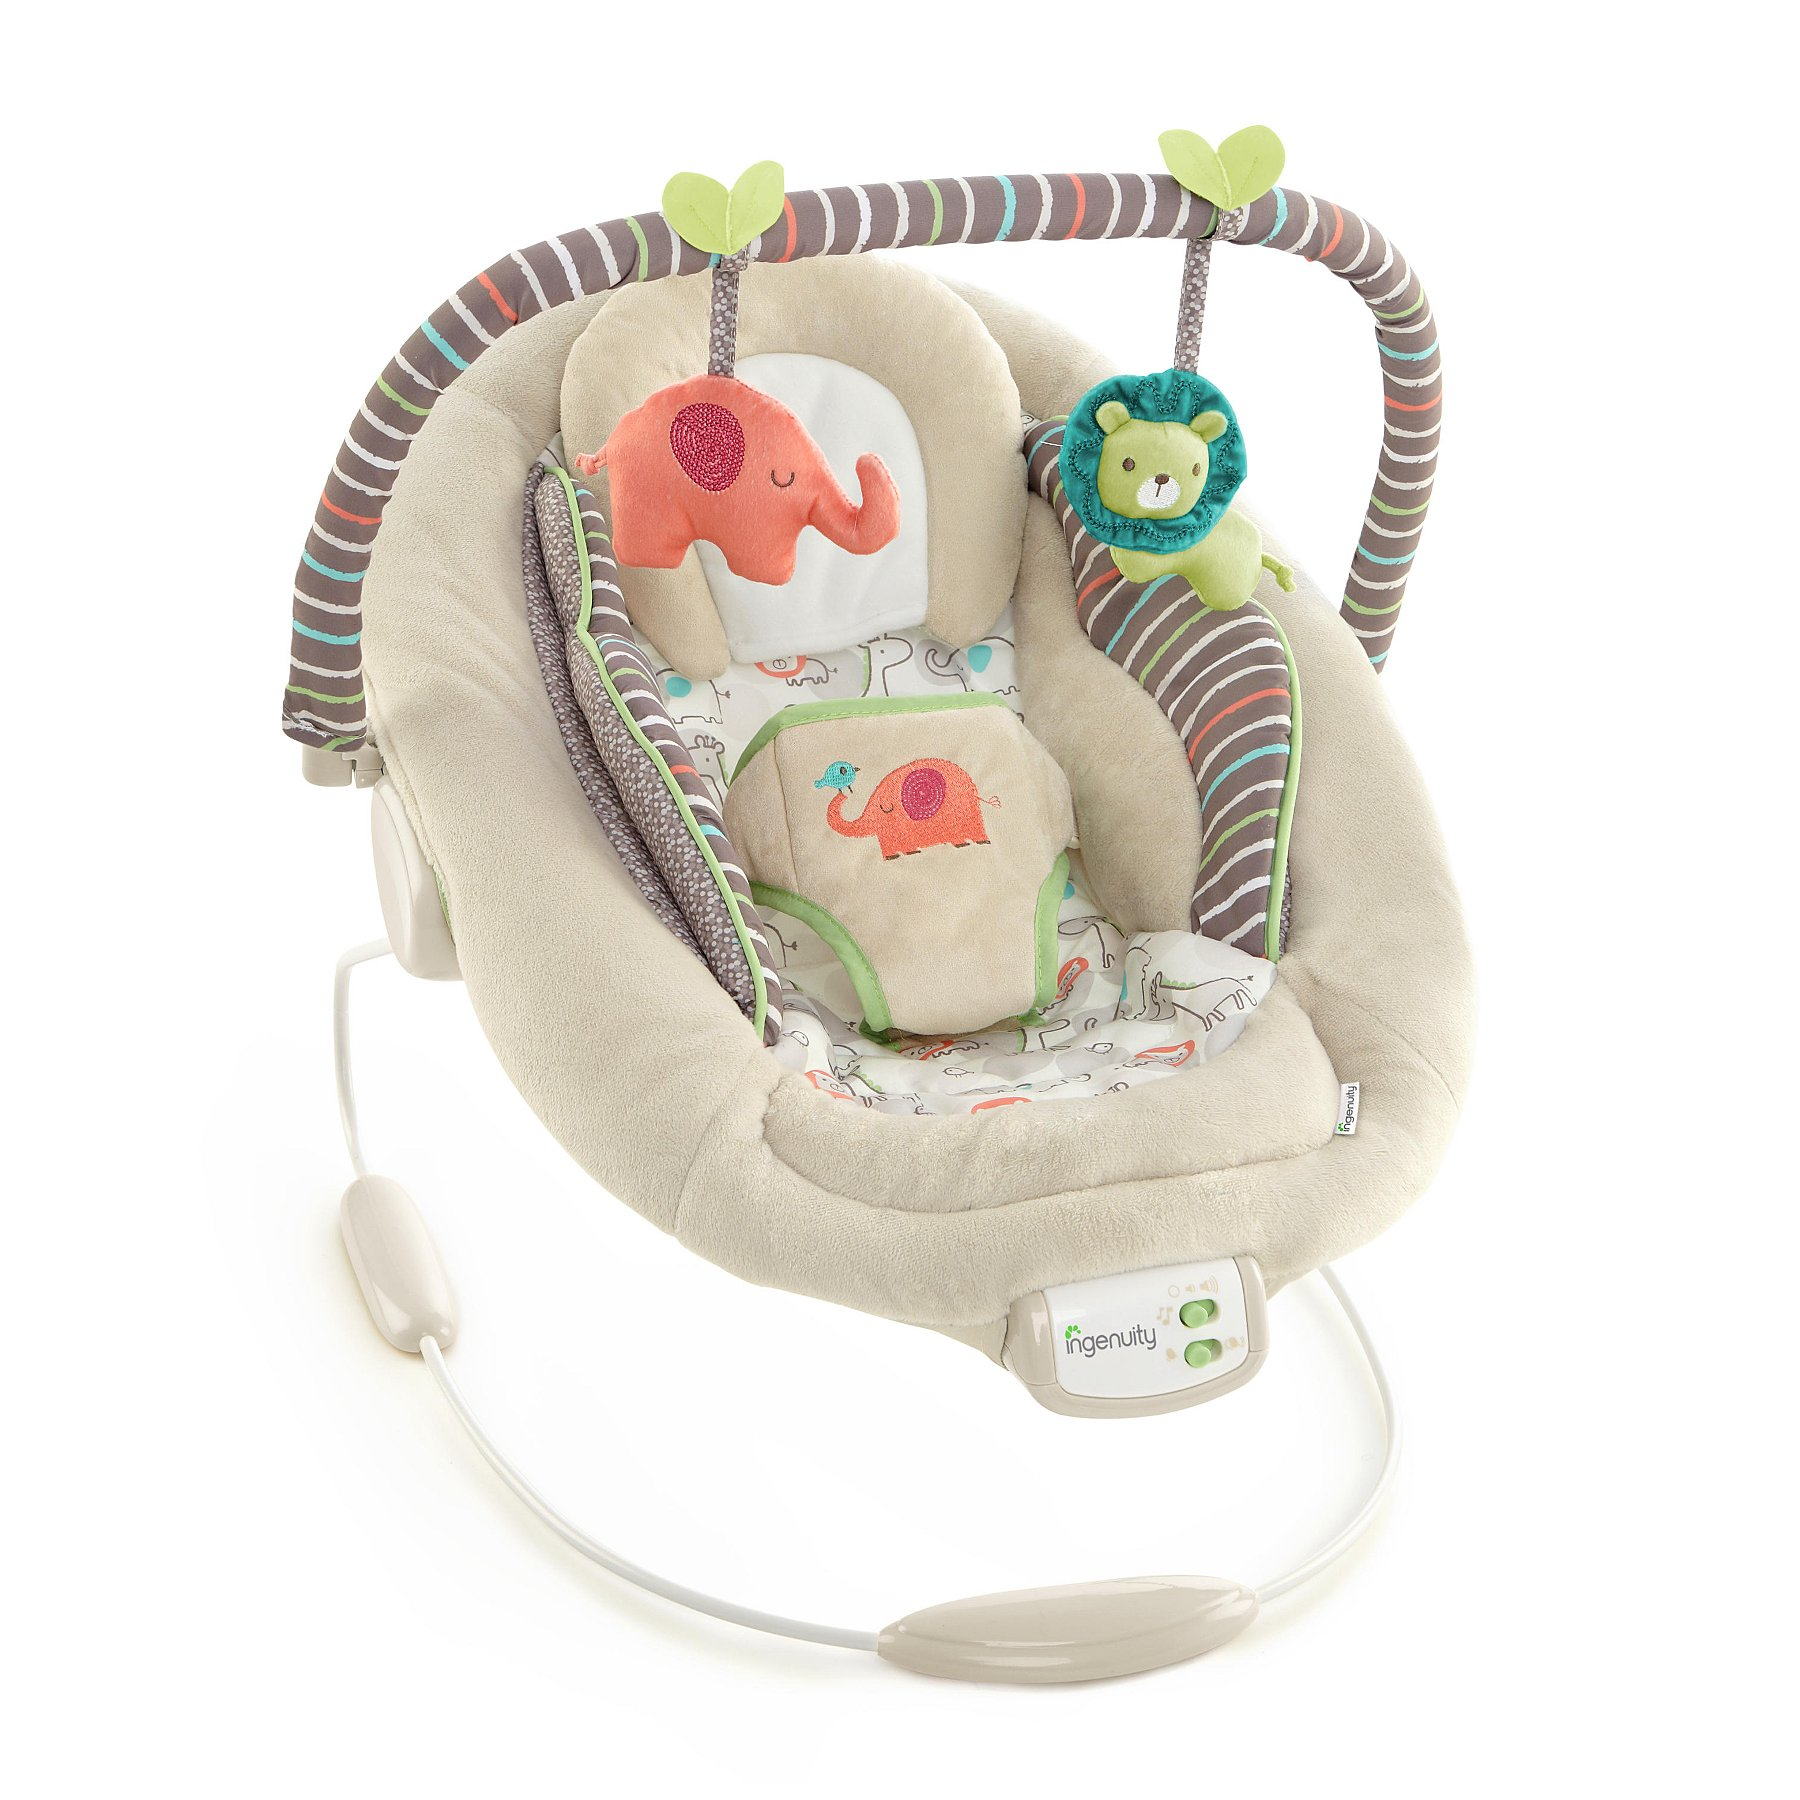 648c14ae7 Ingenuity Cozy Kingdom bouncer | Baby | George